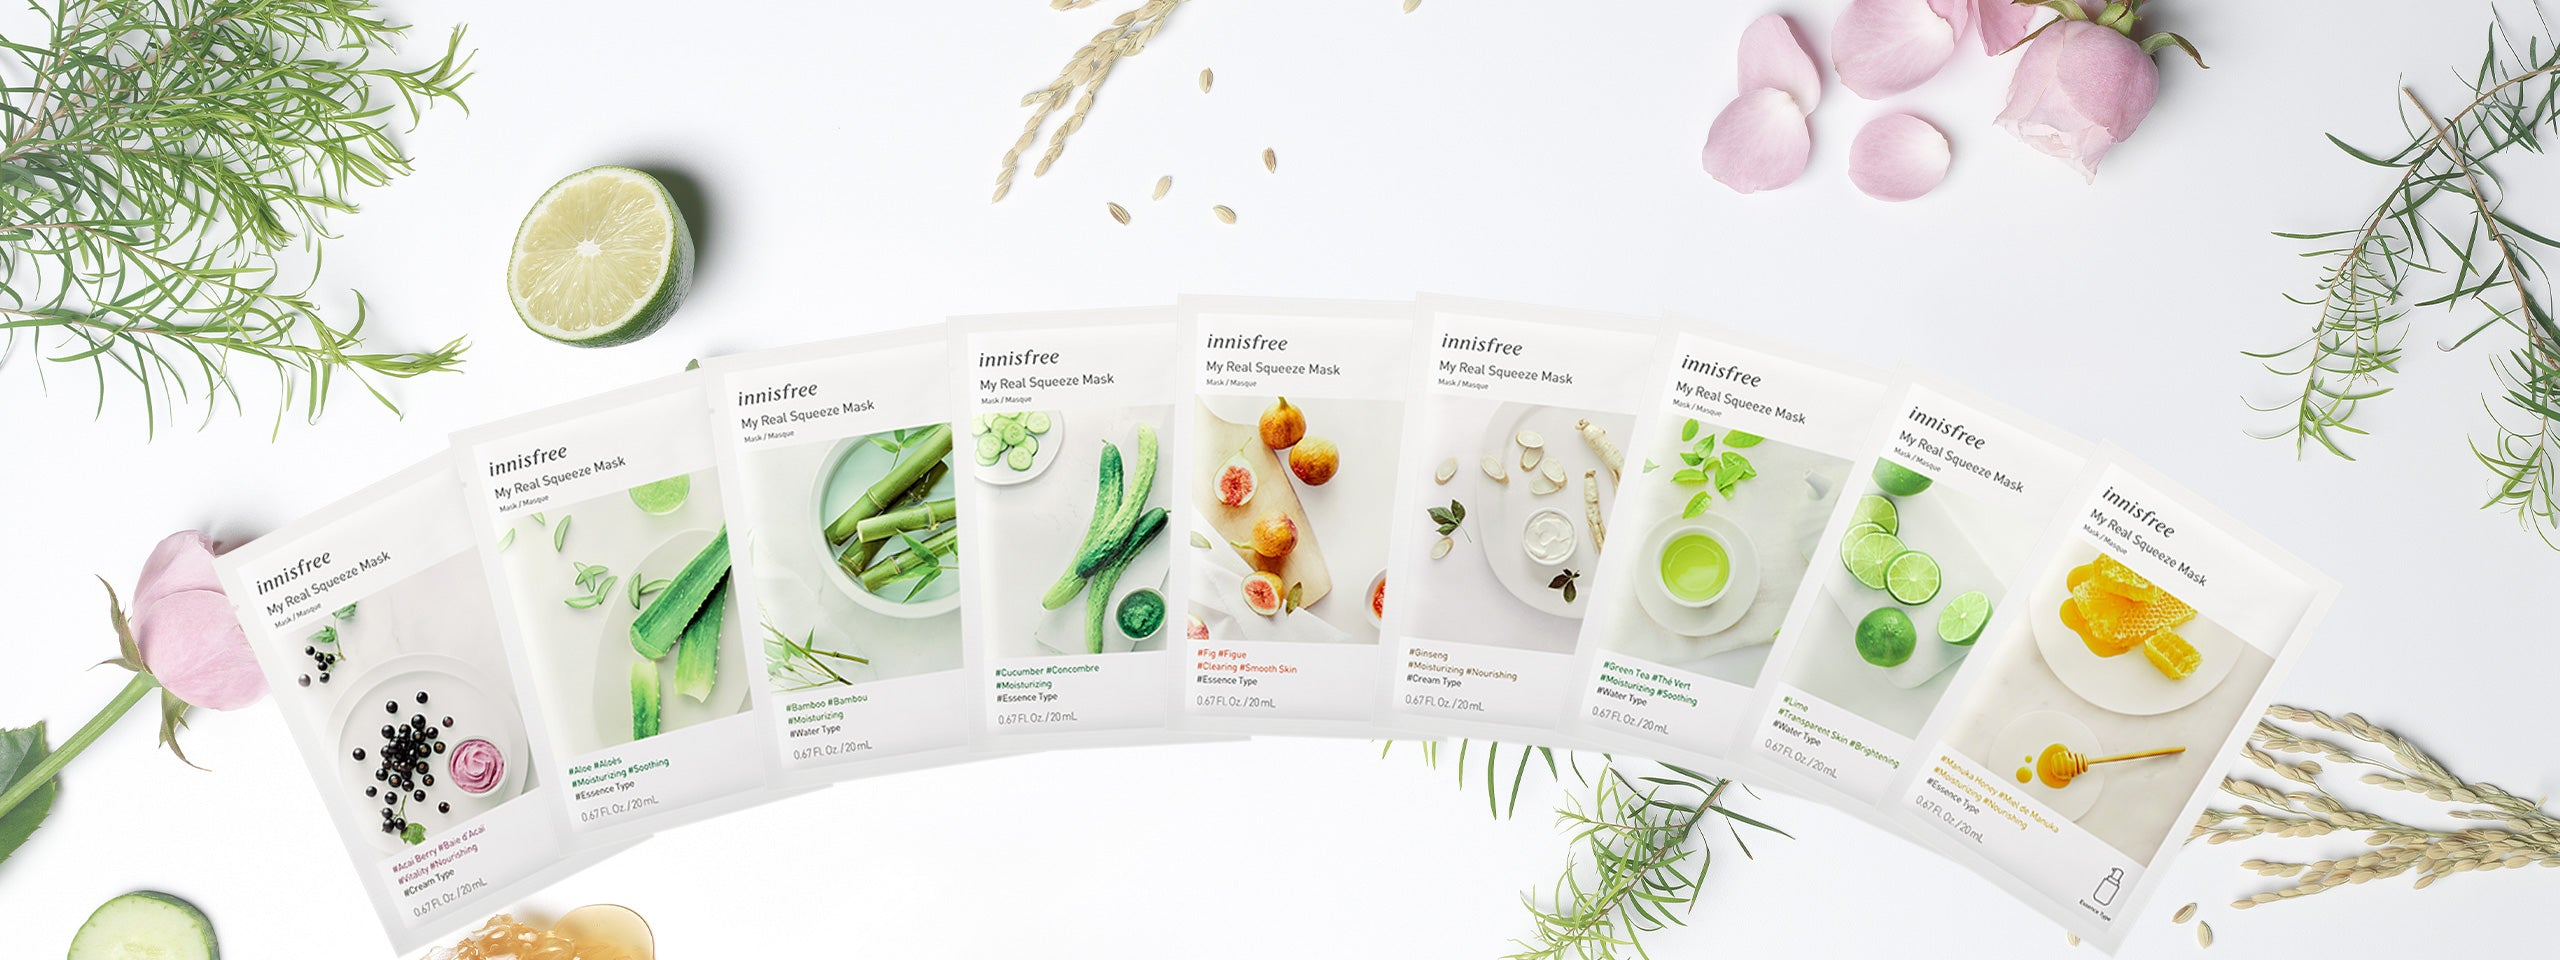 innisfree korean beauty brand best sheet mask for everyday use my real flavors